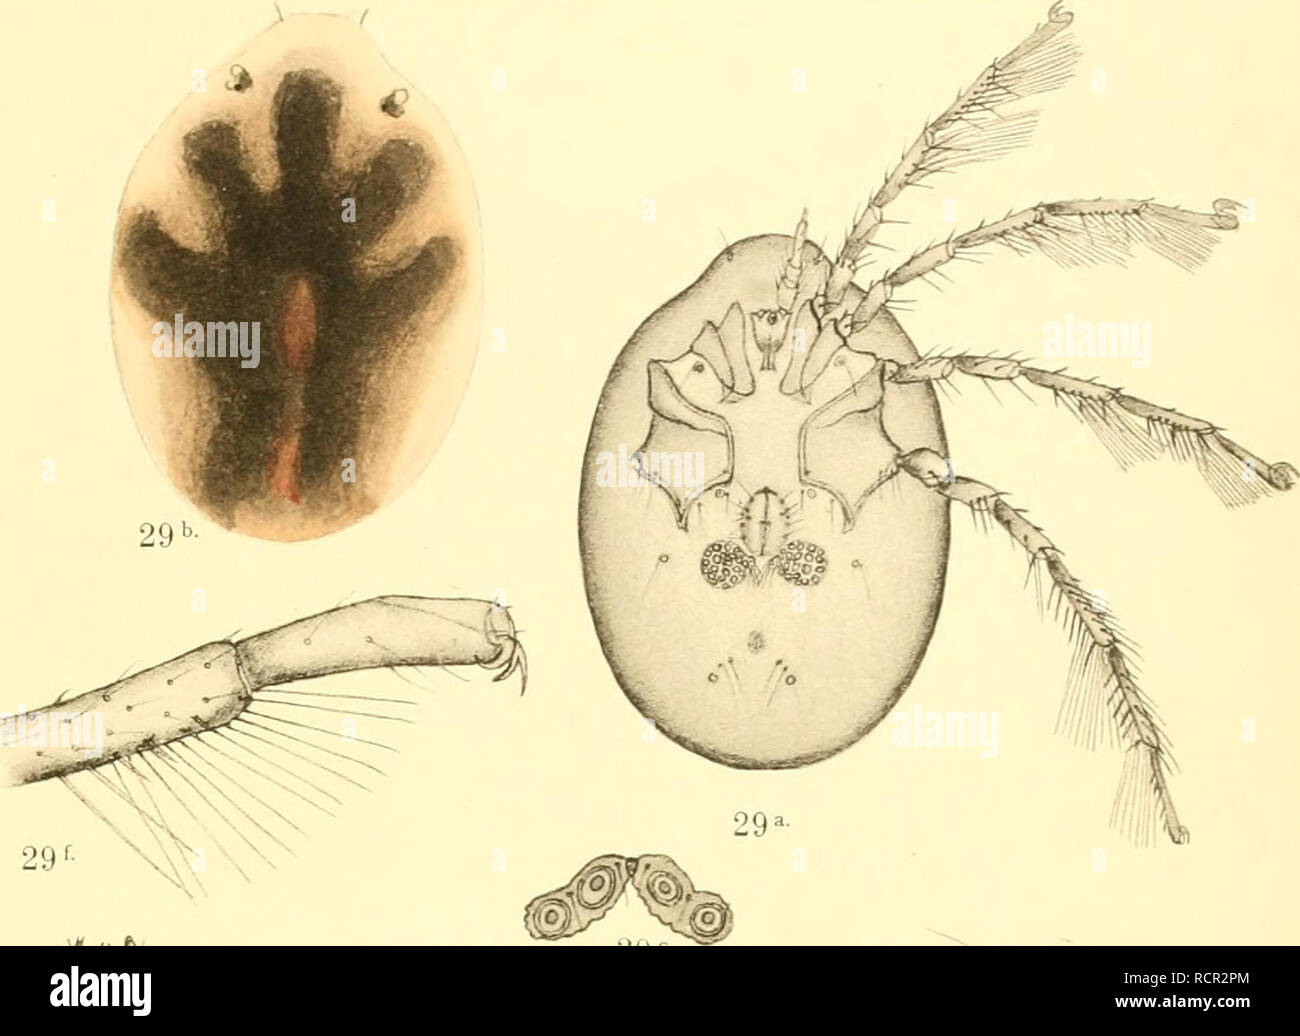 . Deutschlands Hydrachniden. Hydrachnidae; Mites. . Please note that these images are extracted from scanned page images that may have been digitally enhanced for readability - coloration and appearance of these illustrations may not perfectly resemble the original work.. Piersig, R. Stuttgart : E. Nägele - Stock Image